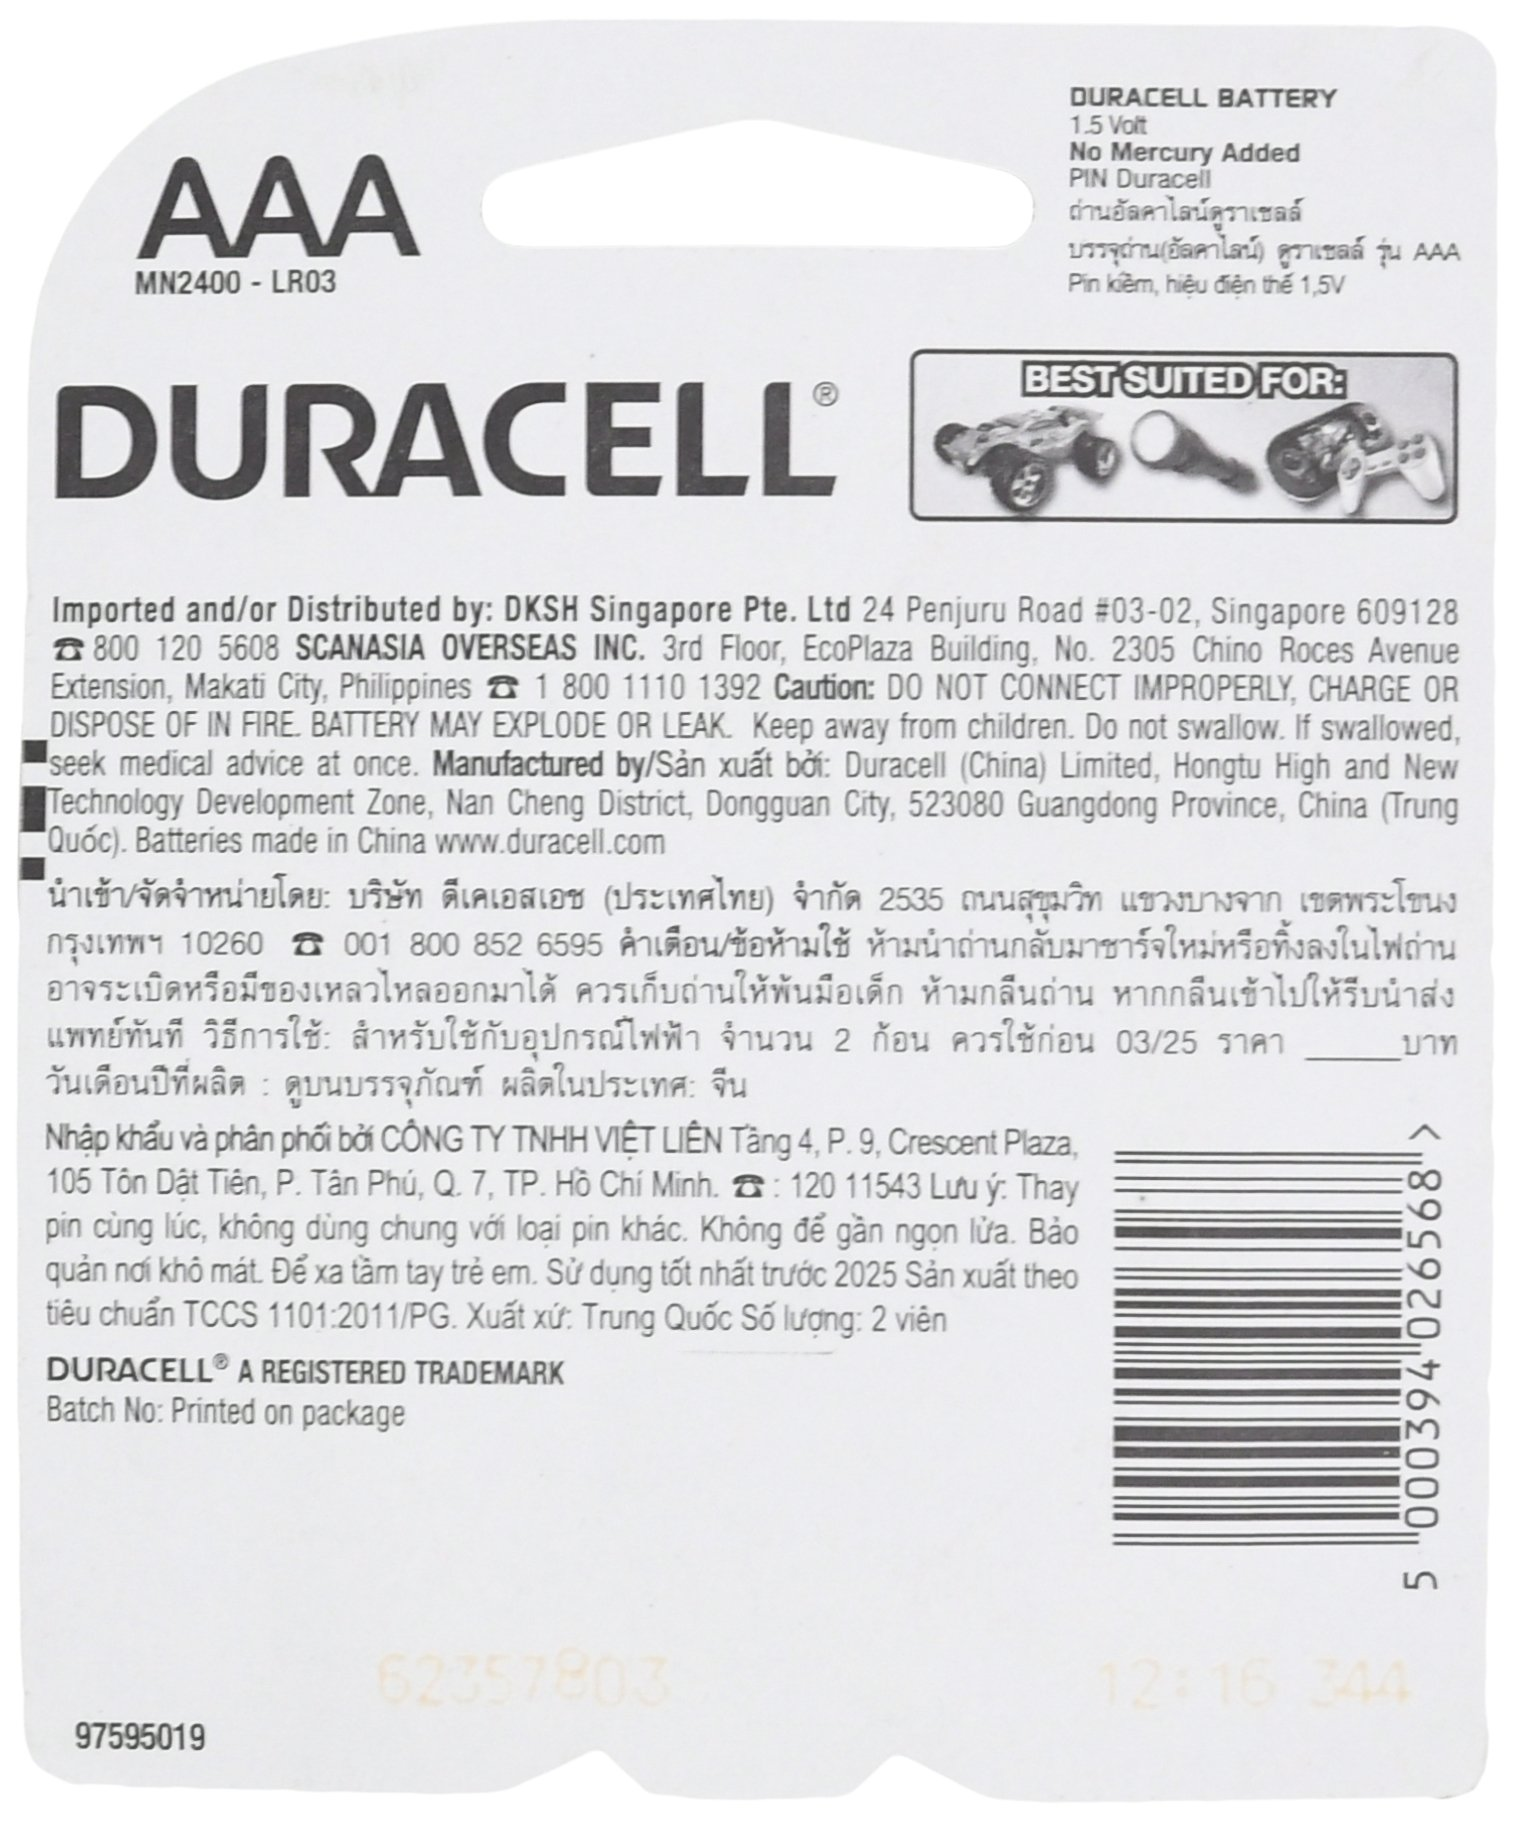 Duracell - CopperTop AAA Alkaline Batteries - long lasting, all-purpose Triple A battery for household and business - 2 count